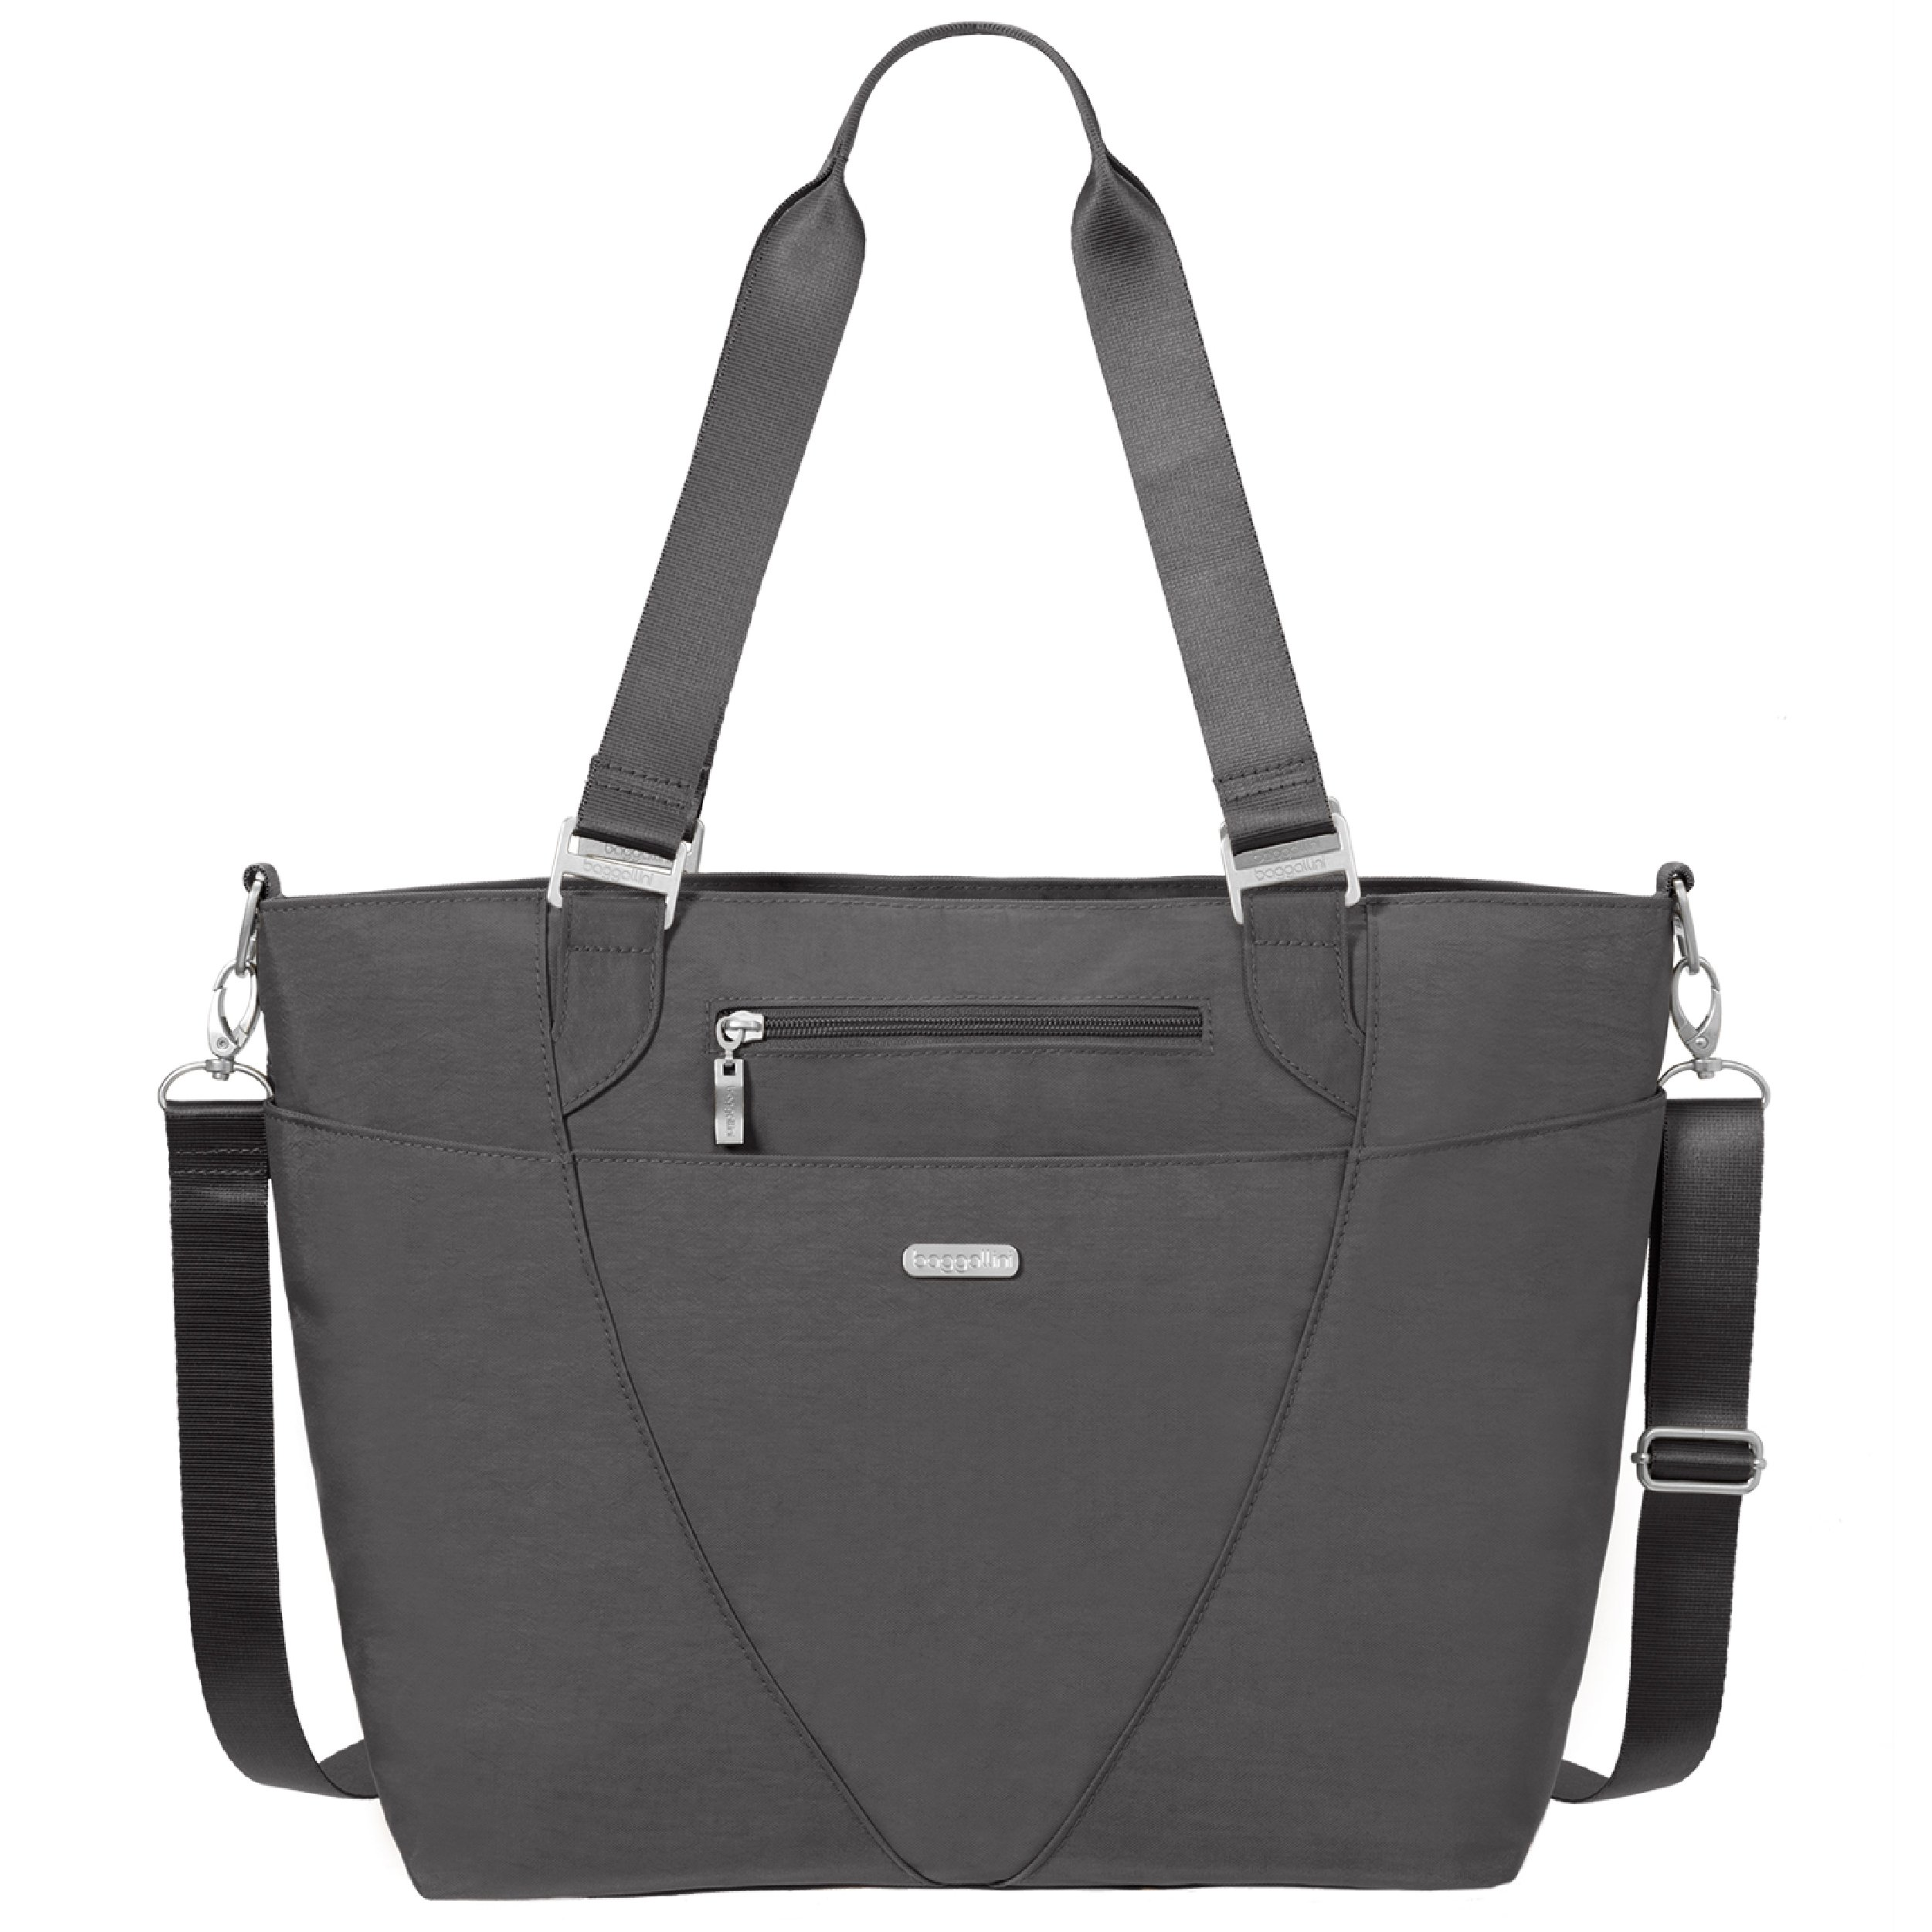 Baggallini Avenue Travel Tote, Charcoal, One Size by Baggallini (Image #6)